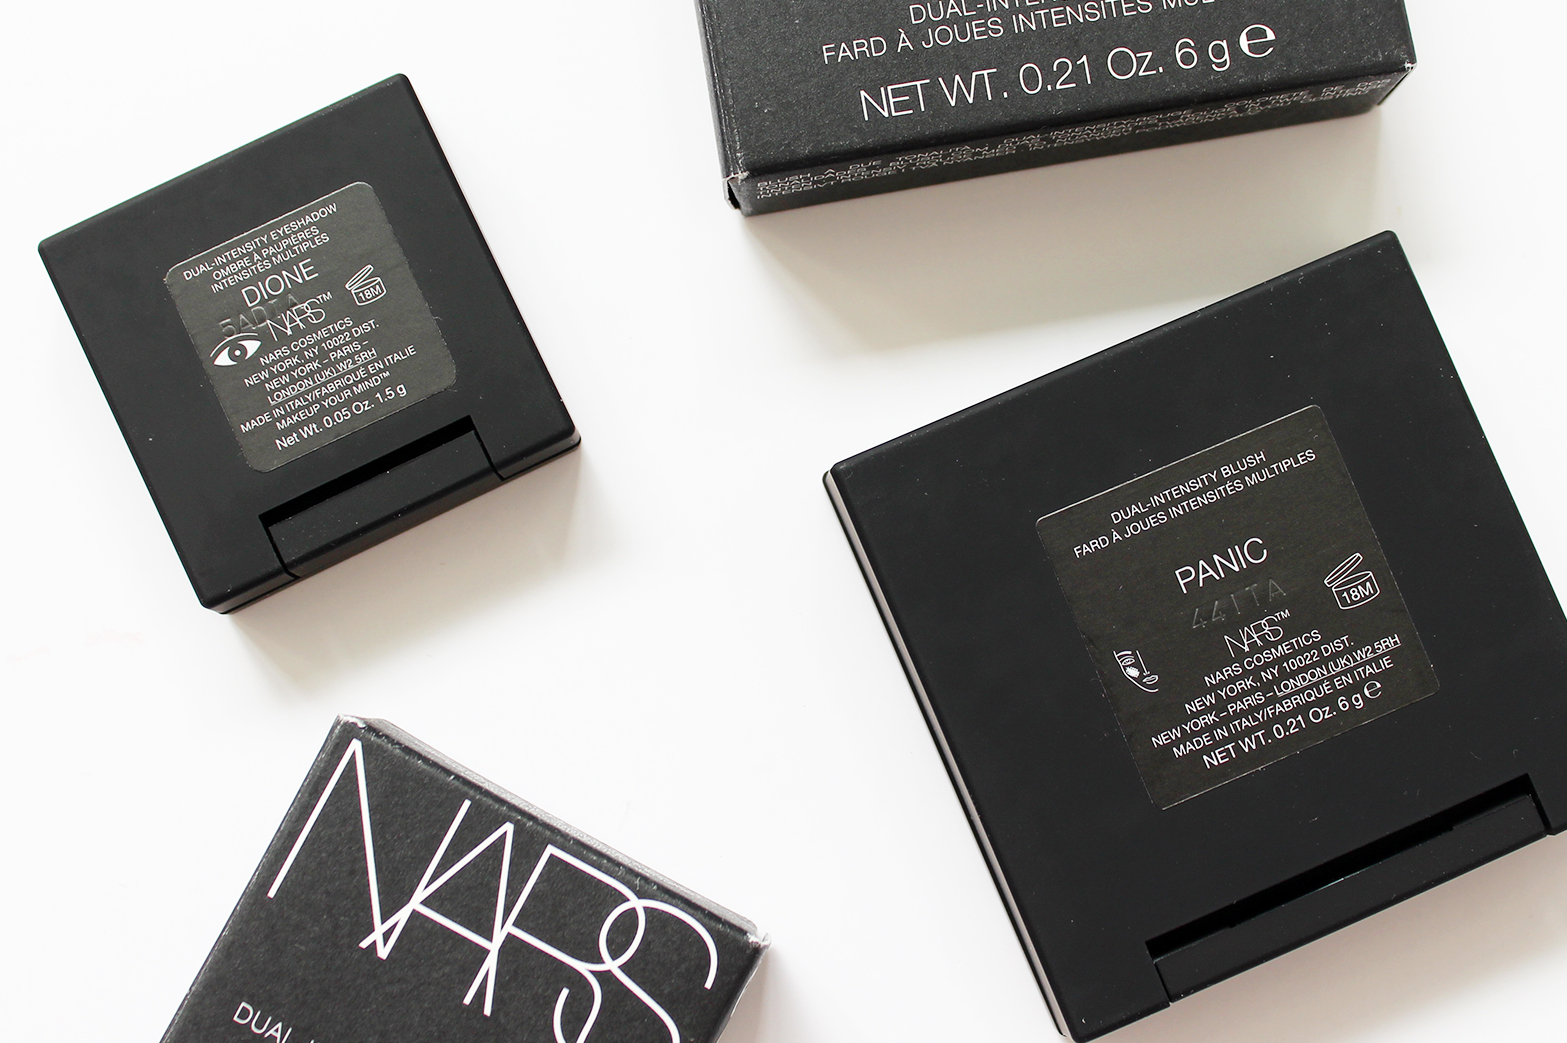 NARS | Dual Intensity Blush + Eyeshadow - Review + Swatches - CassandraMyee